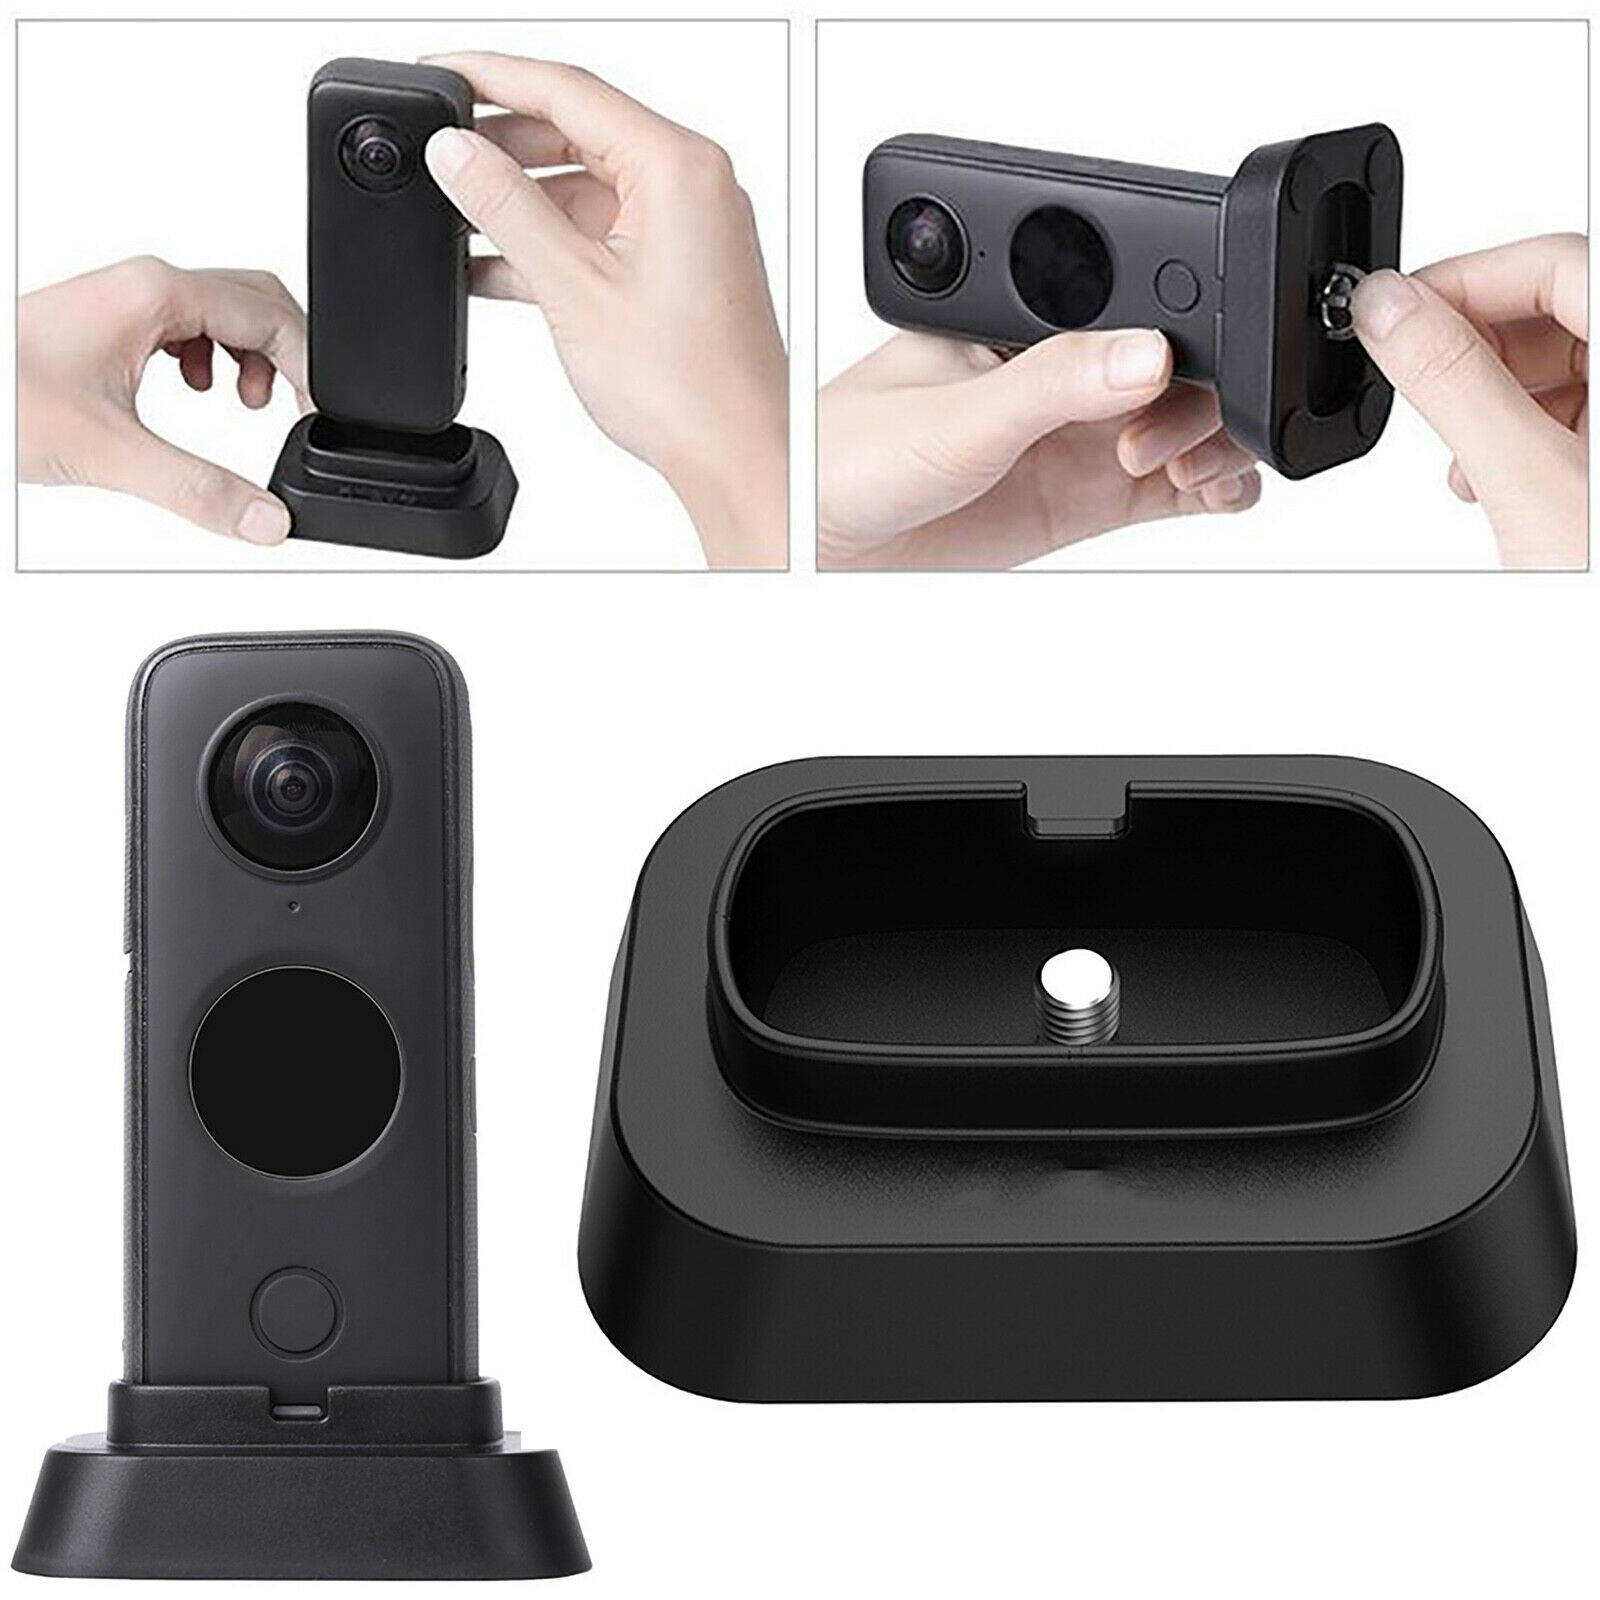 Desktop Support Base Brackets Holder Stand for Insta360 One X2 Panoramic Camera